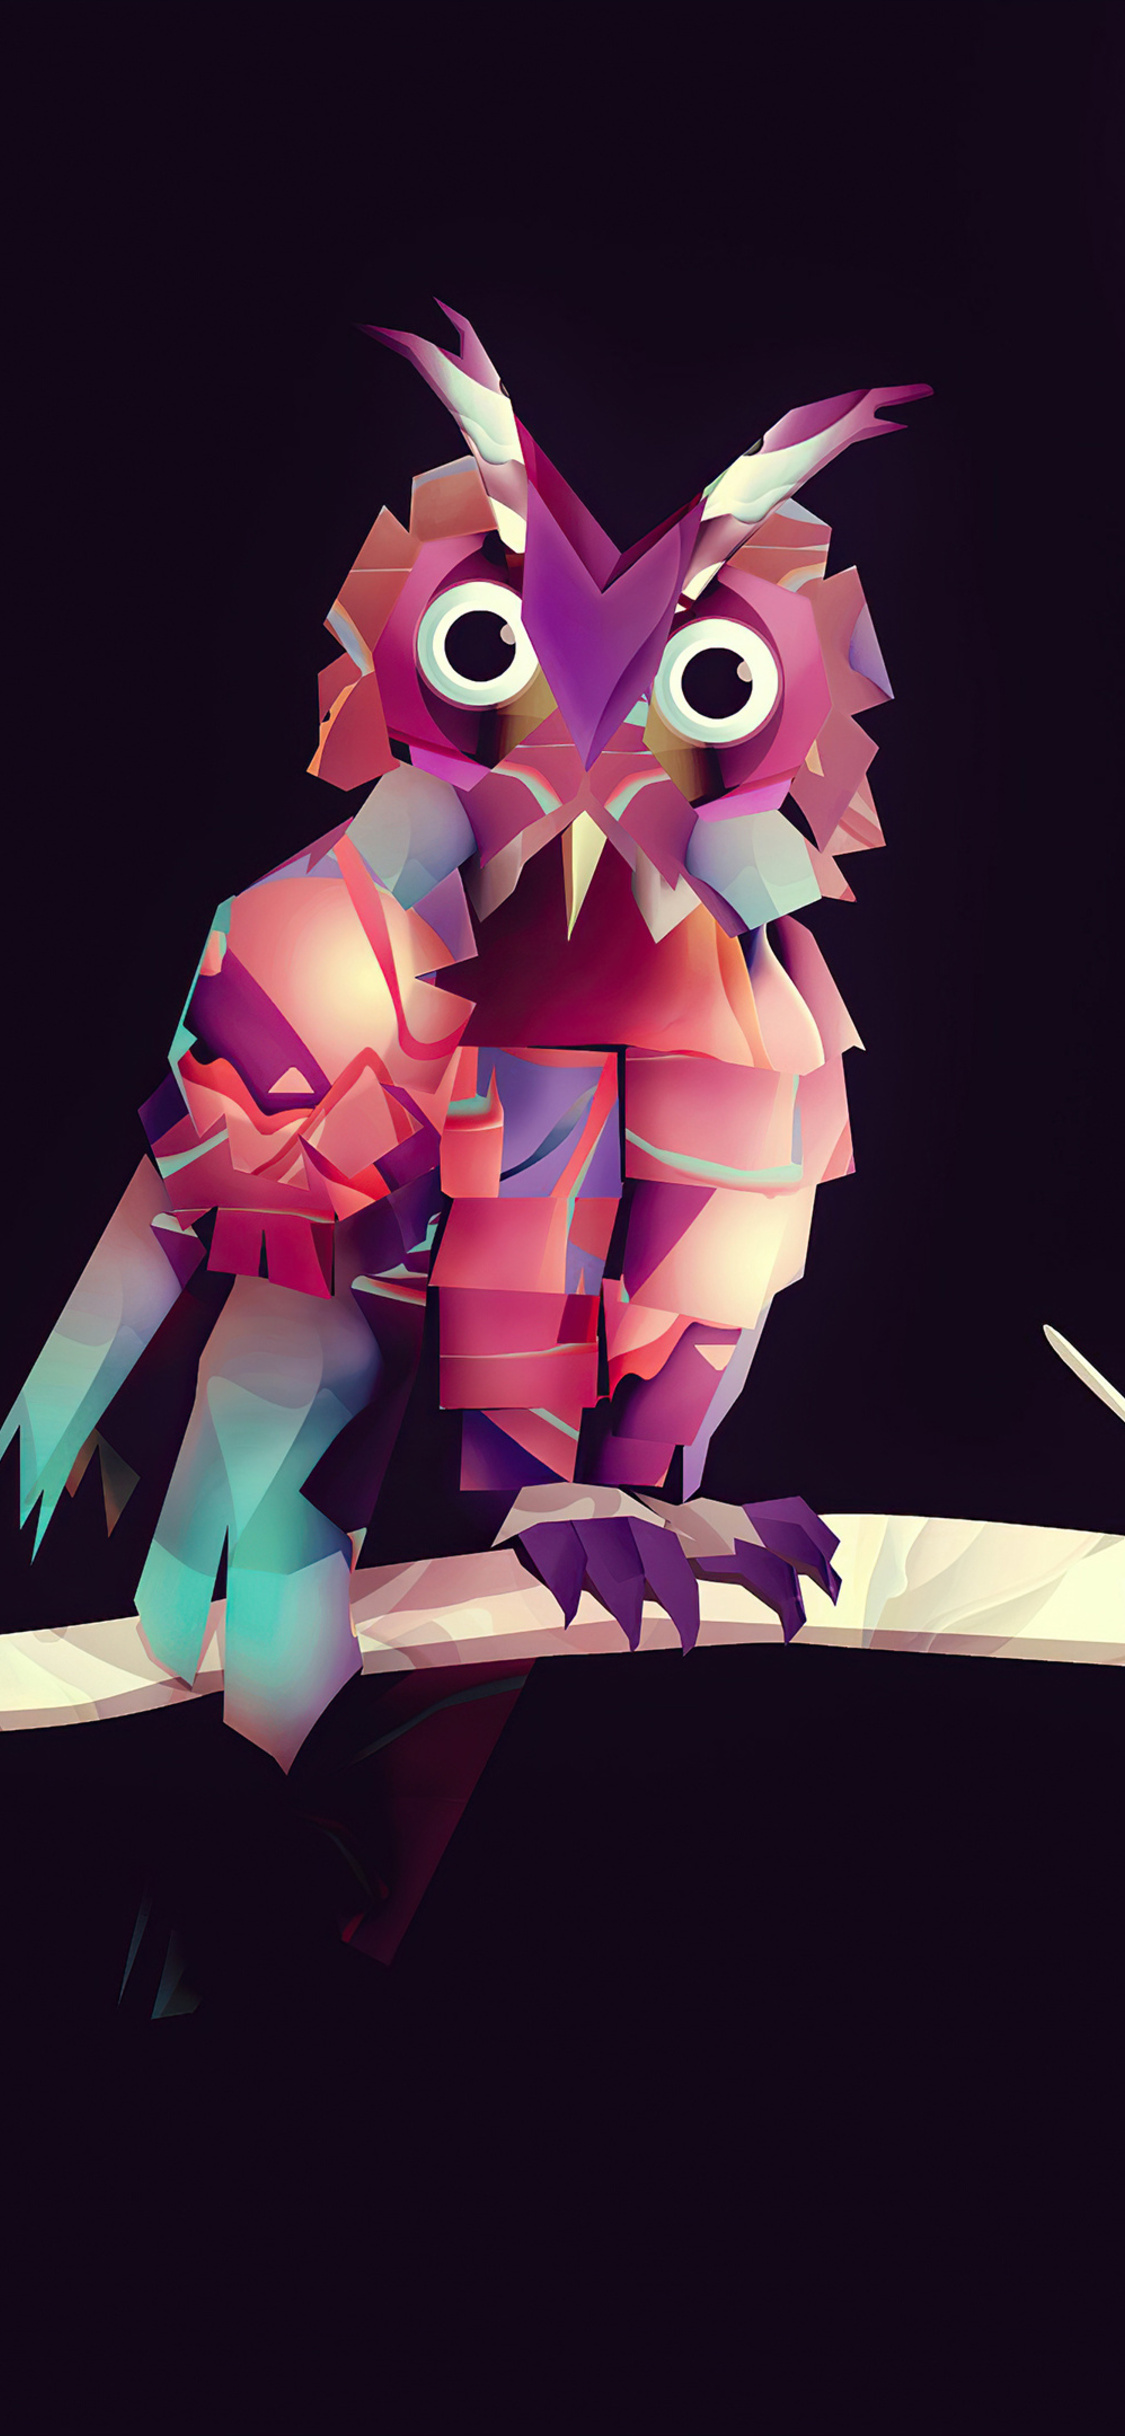 owl-low-poly-4k-8t.jpg